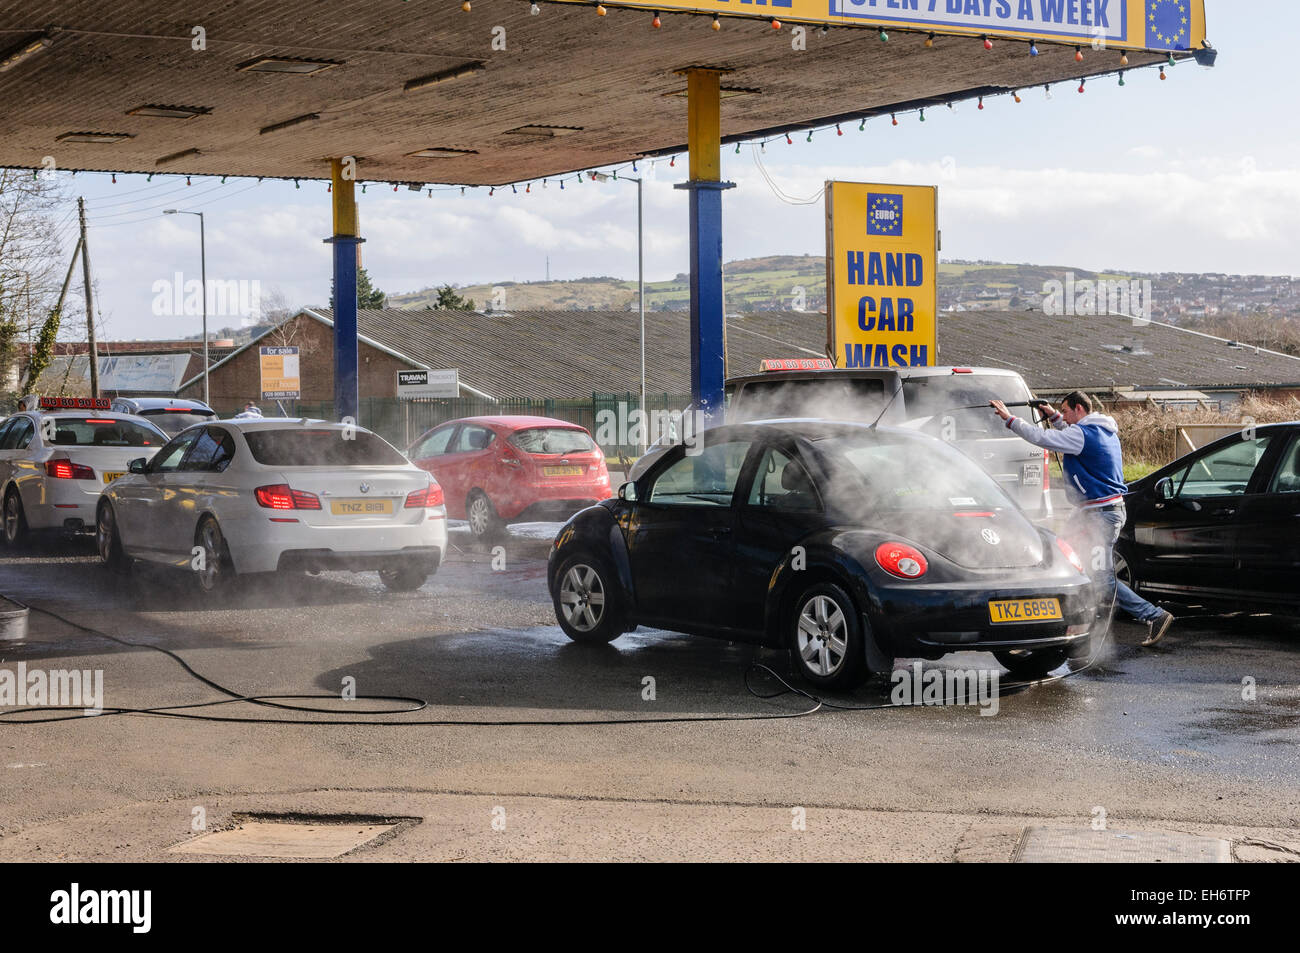 A Man Washes Cars With A Power Washer At A Euro Car Wash Stock